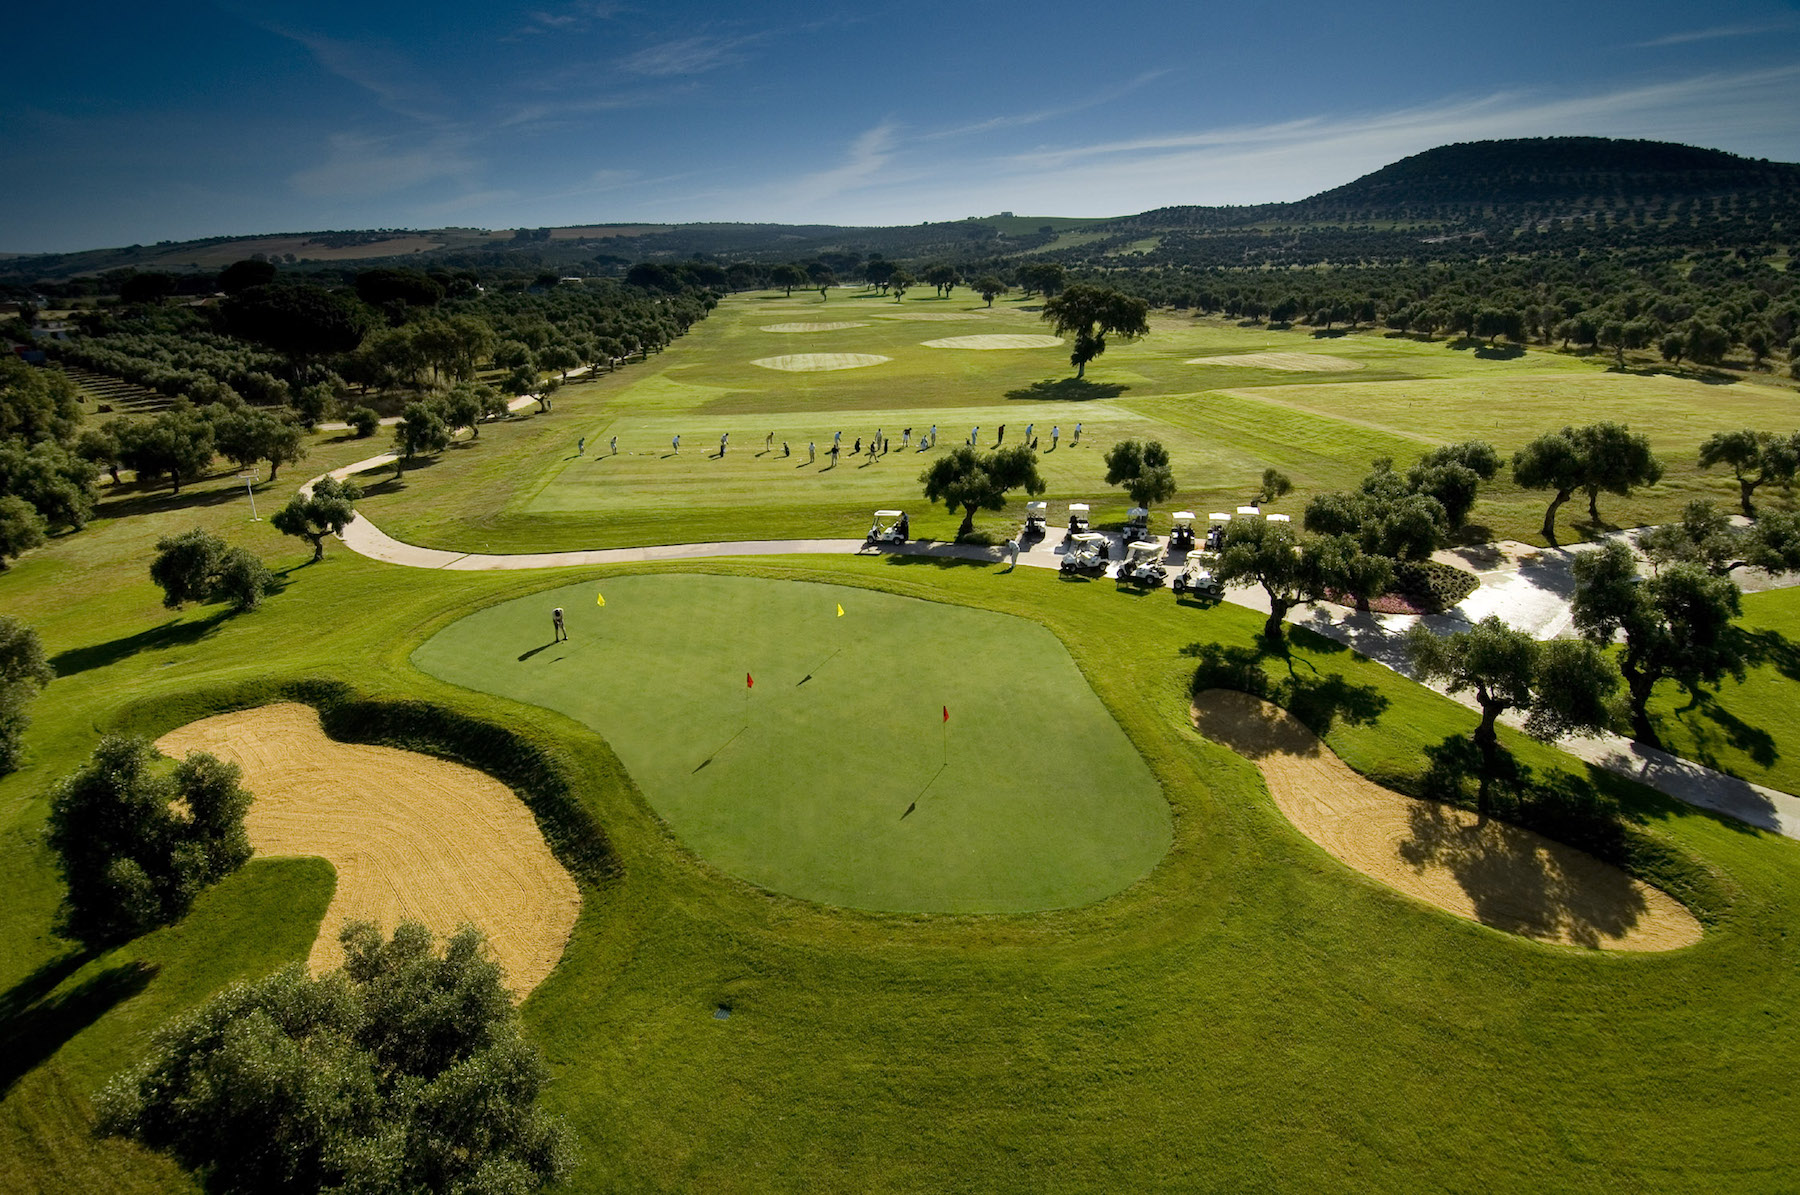 Arcos Gardens Golf & Country Club